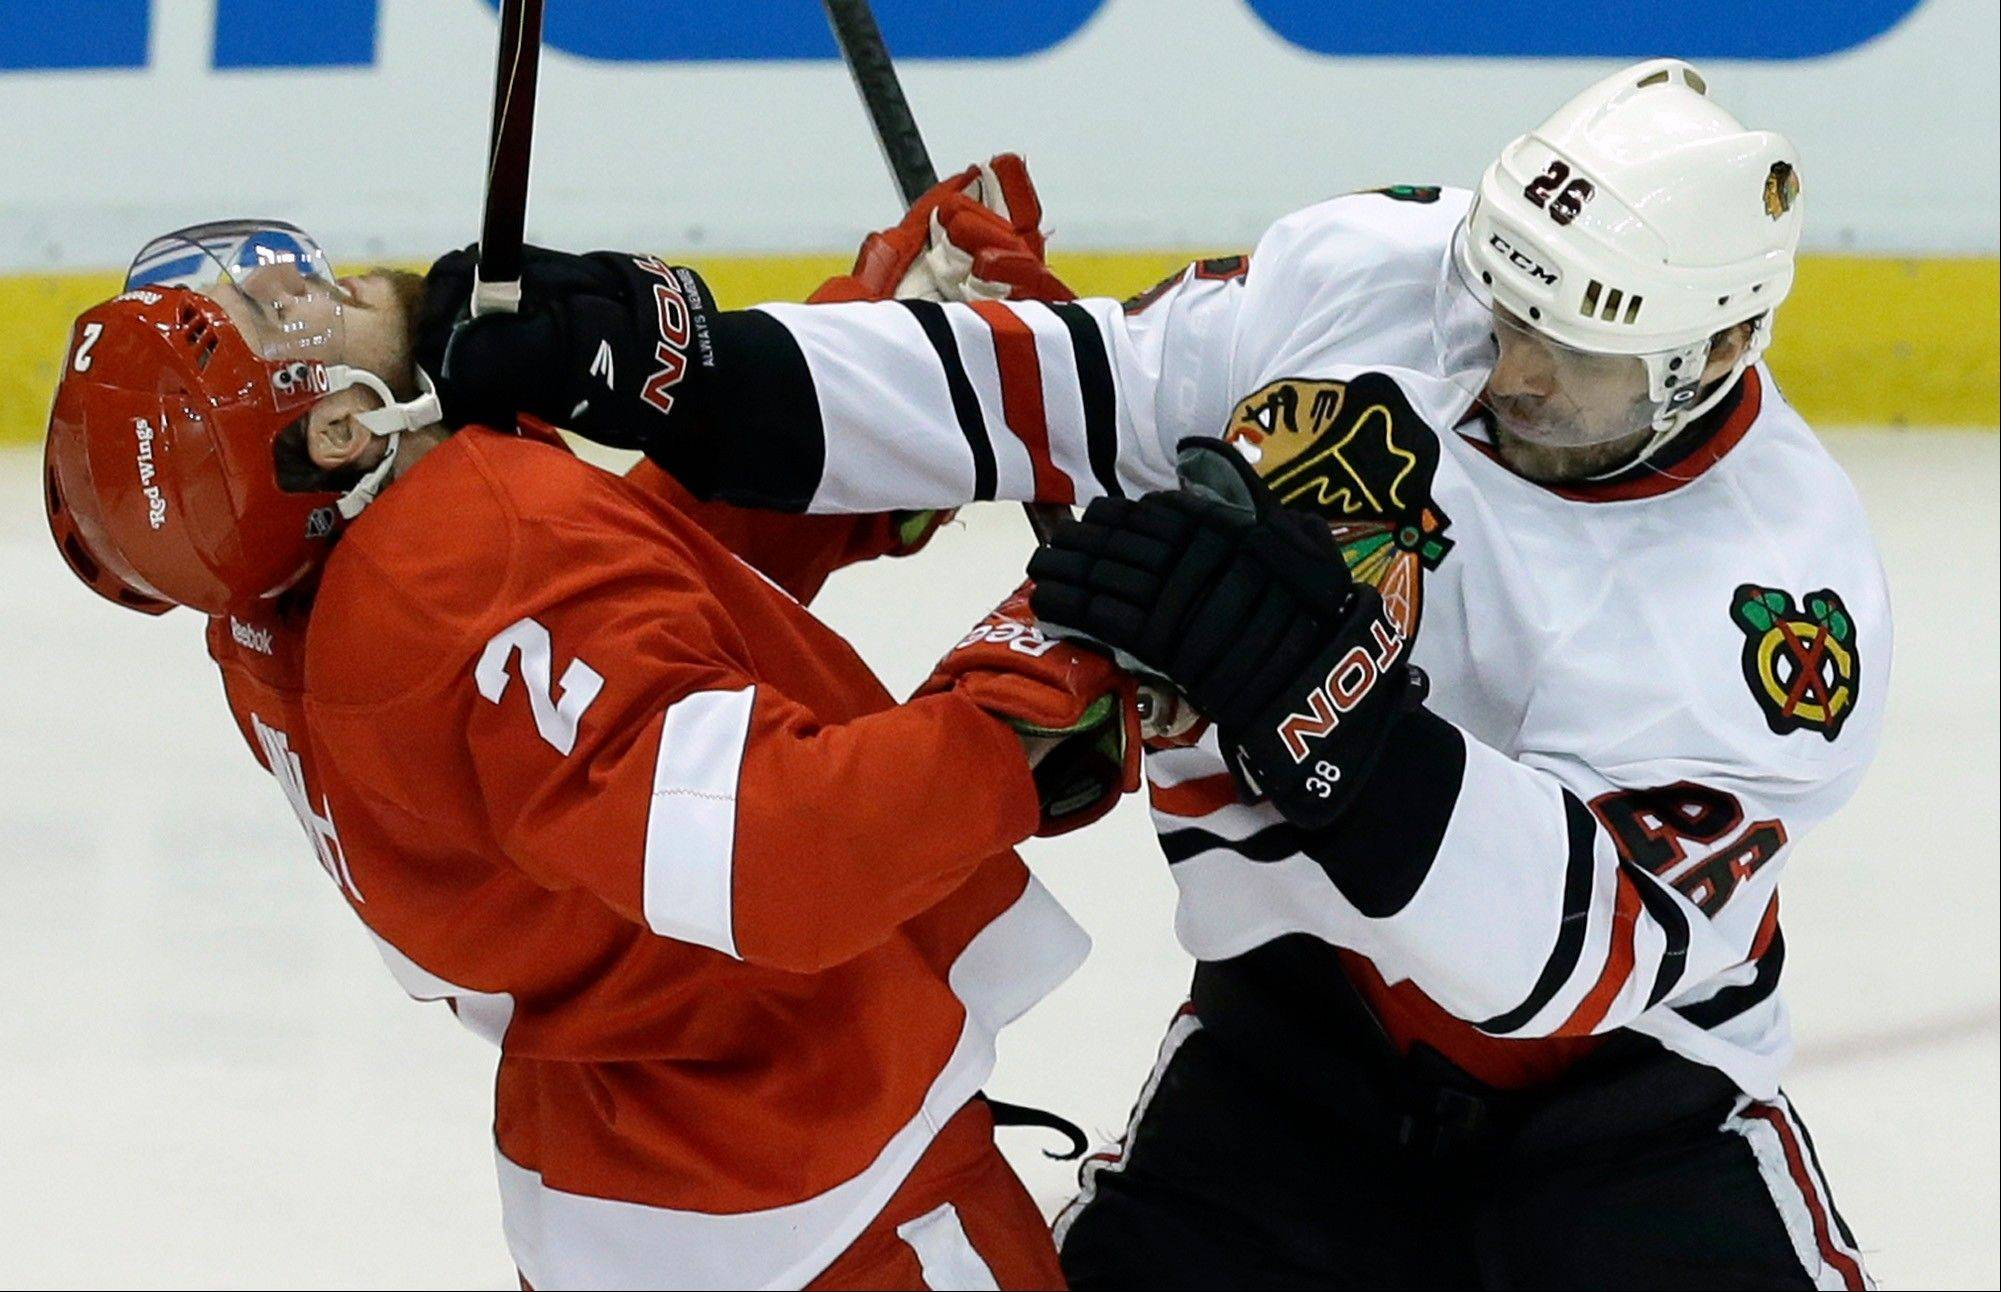 Chicago Blackhawks center Michal Handzus (26), of the Czech Republic, checks Detroit Red Wings defenseman Brendan Smith (2) during the second period.